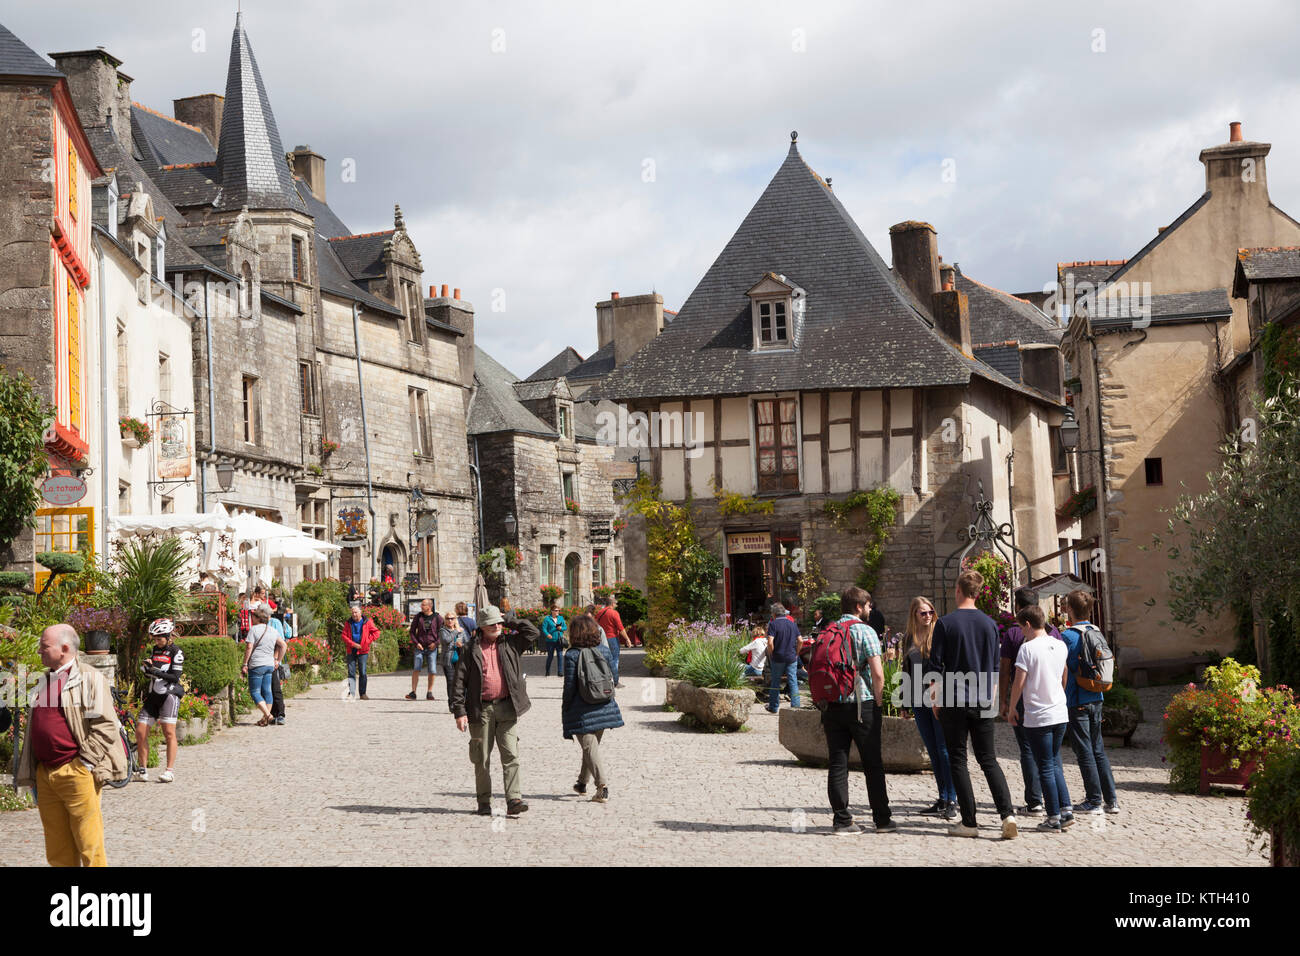 The square of the well, in Rochefort en Terre (Brittany - France). Ranked as the 2016 France's most beautiful - Stock Image